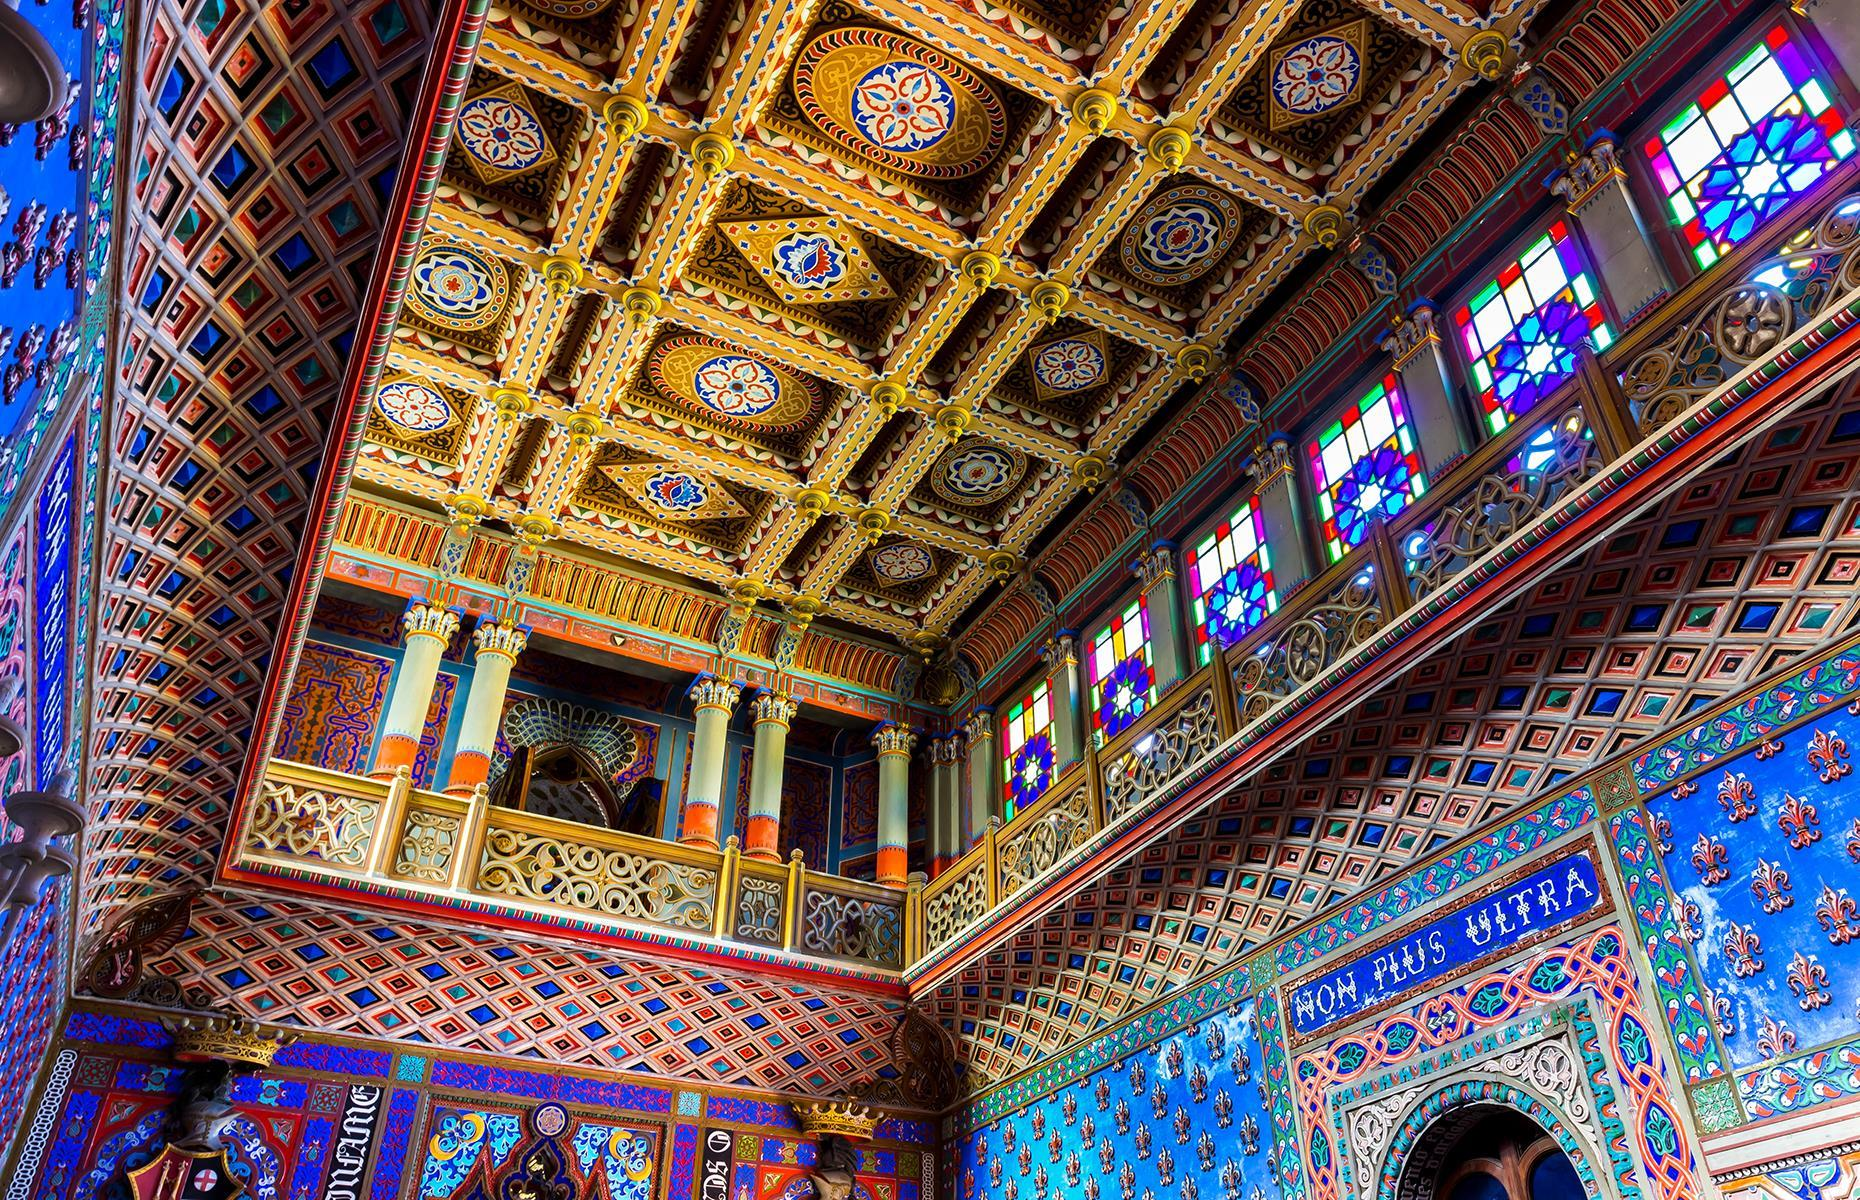 Slide 29 of 70: However, its Moorish beauty remains, with colorful tiling and murals throughout. Now privately owned, it's off limits to visitors although you can read more about the property here. Now discover incredible pictures of tourist attractions that no longer exist.